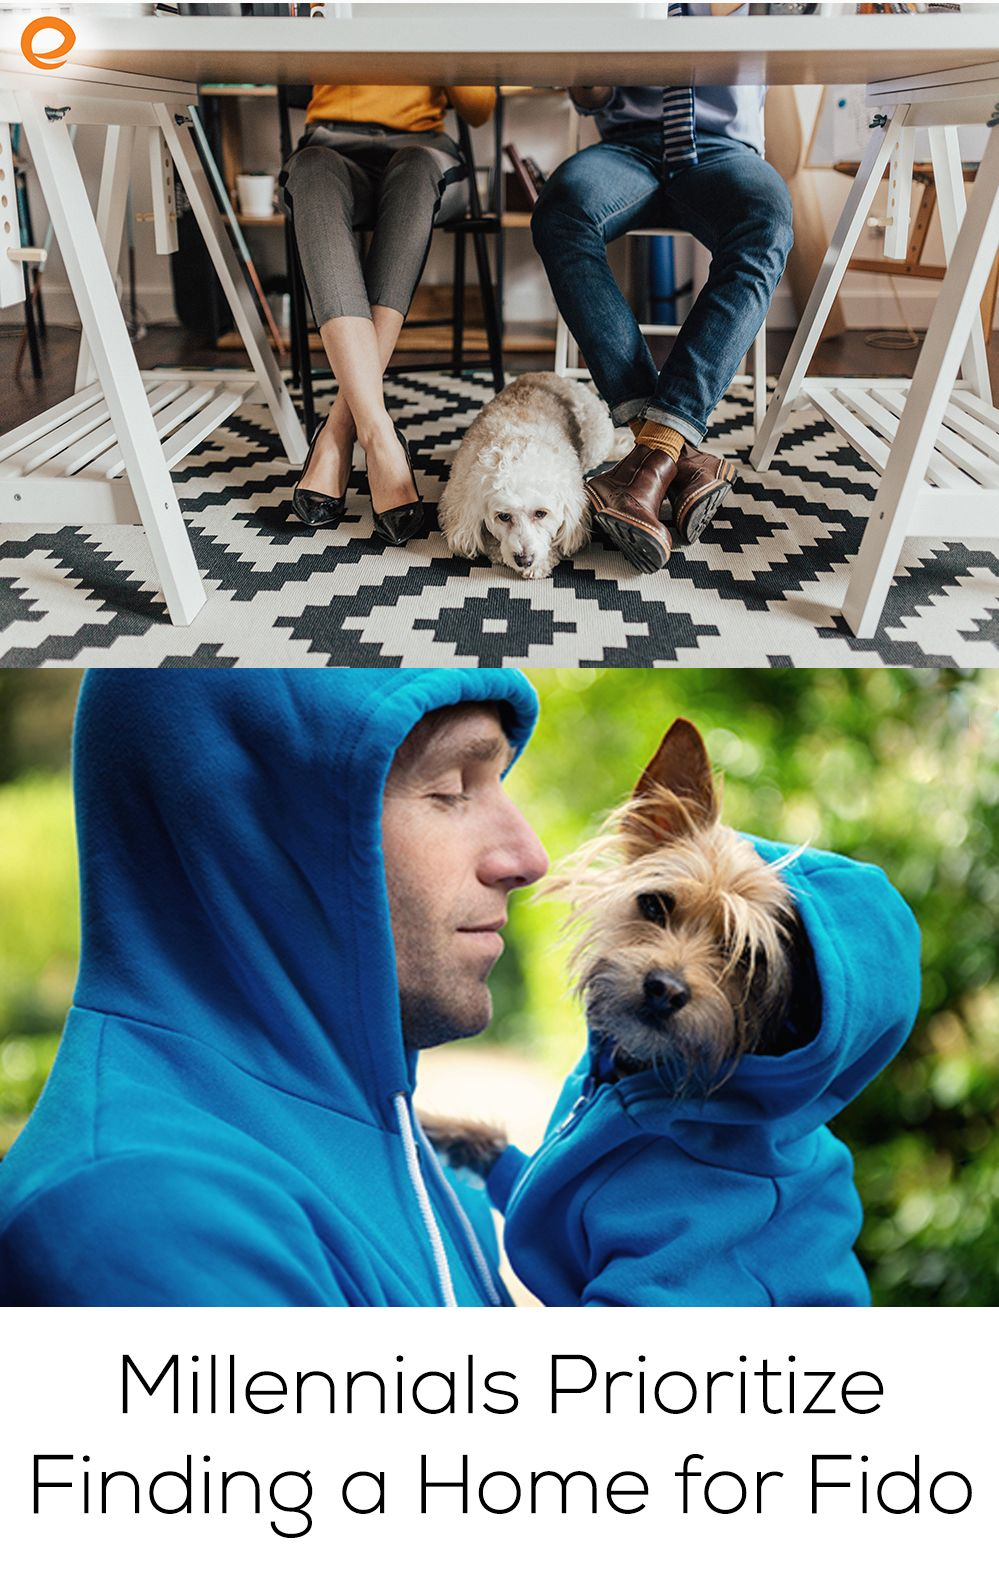 Millennials prioritize finding a home for fido finding a